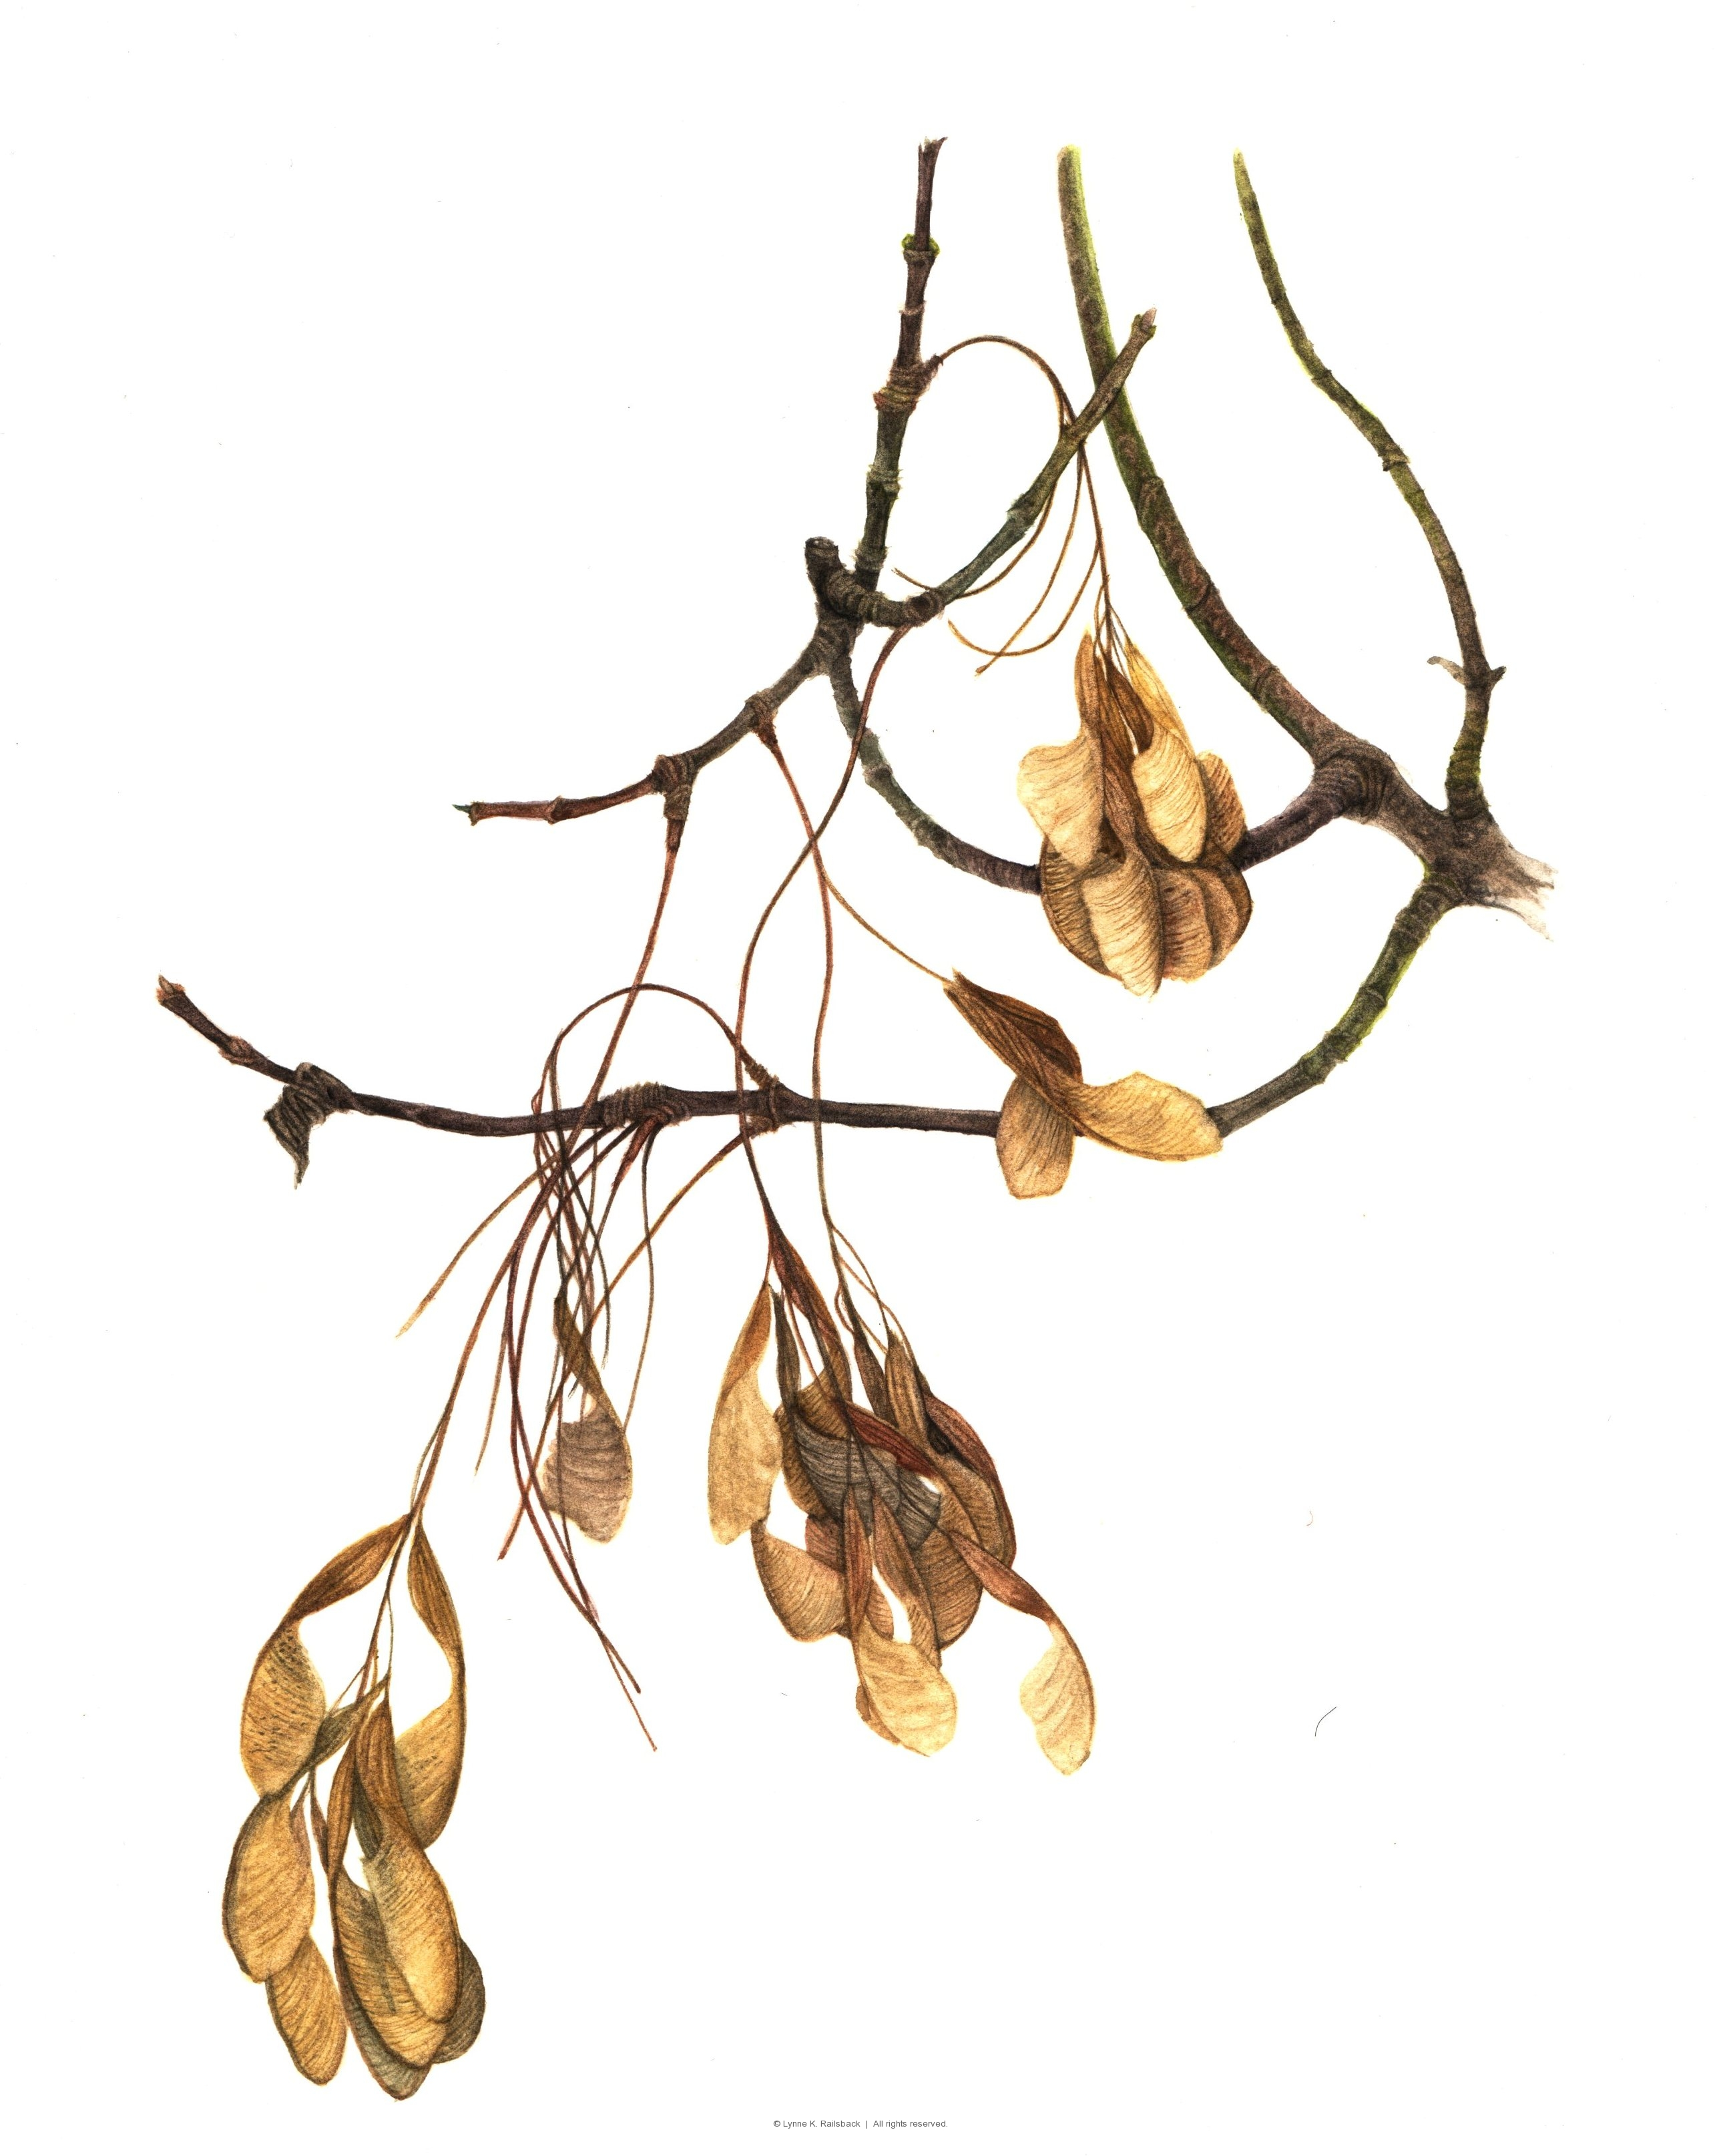 """Box Elder Branch"" <em>Acer nequndo</em>, 2009"